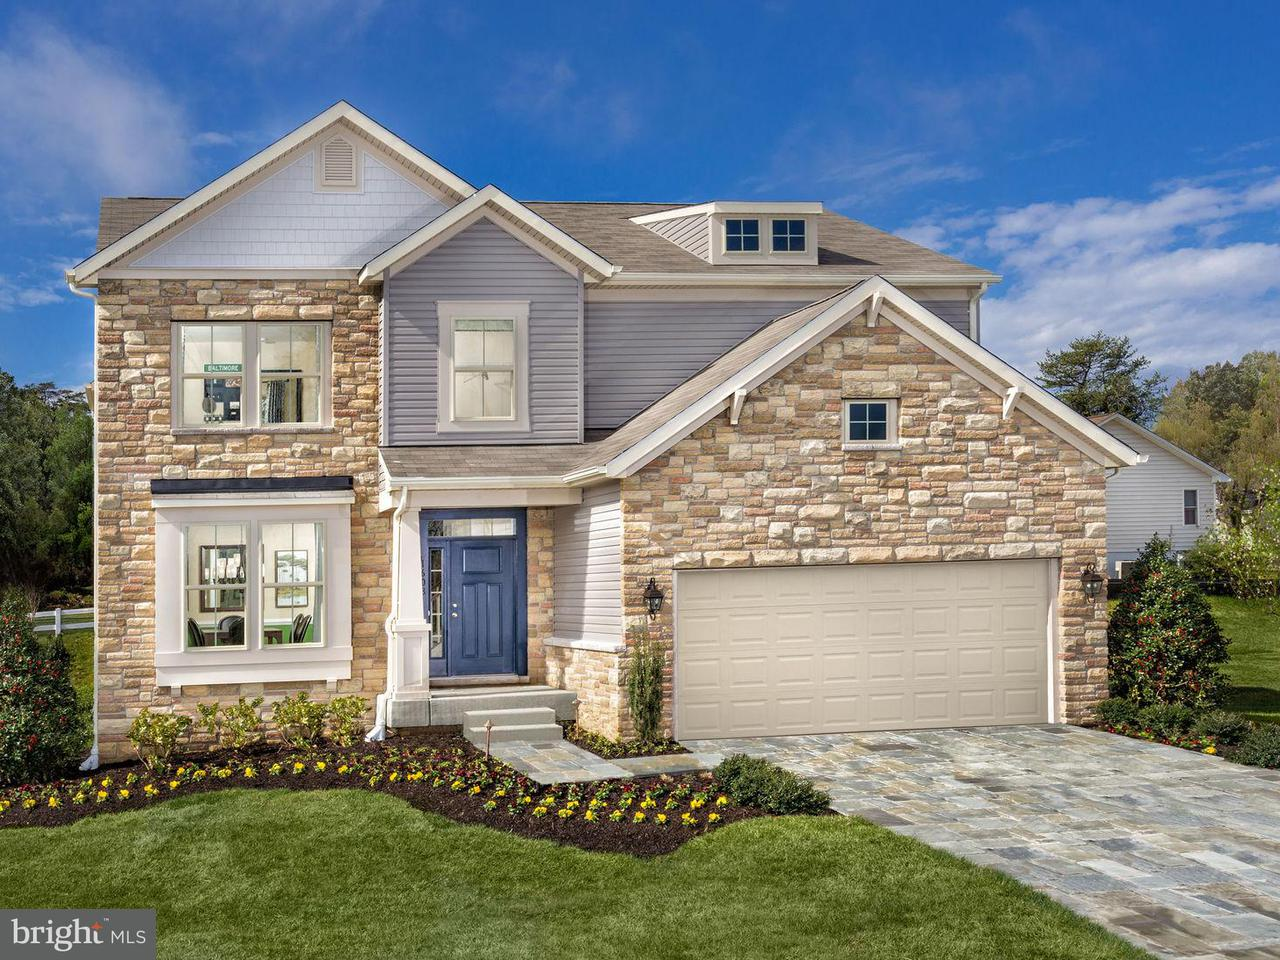 Single Family Home for Sale at 2008 CROMWELL RIDGE Court 2008 CROMWELL RIDGE Court Parkville, Maryland 21234 United States